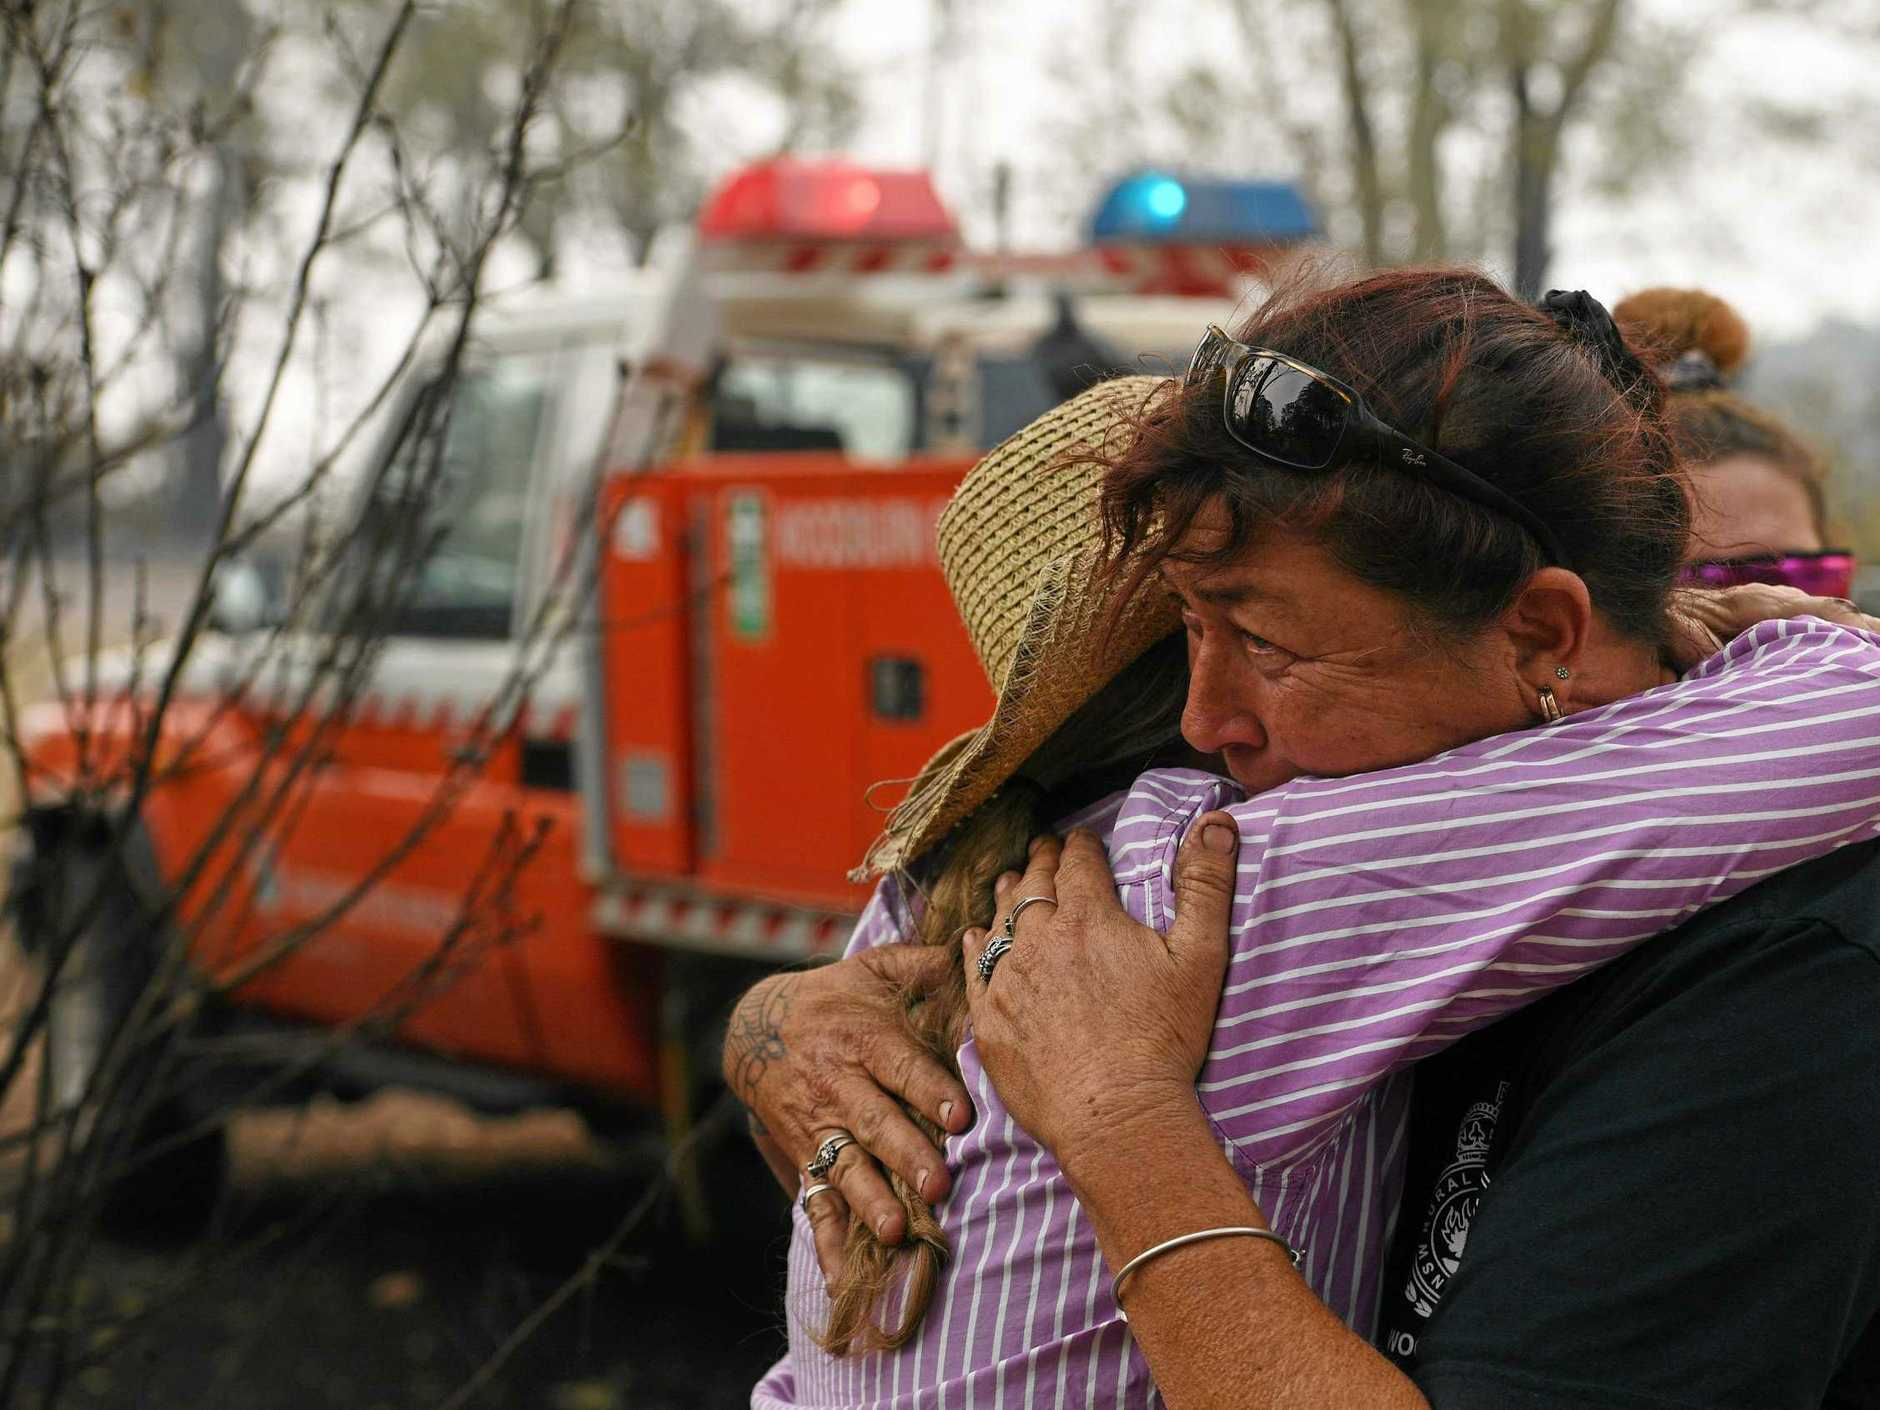 Bora Ridge resident Clare Barry embraces Rural Fire Fighter Raelene Davis after Raelene and her daughter Chantelle helped save the property and horses.